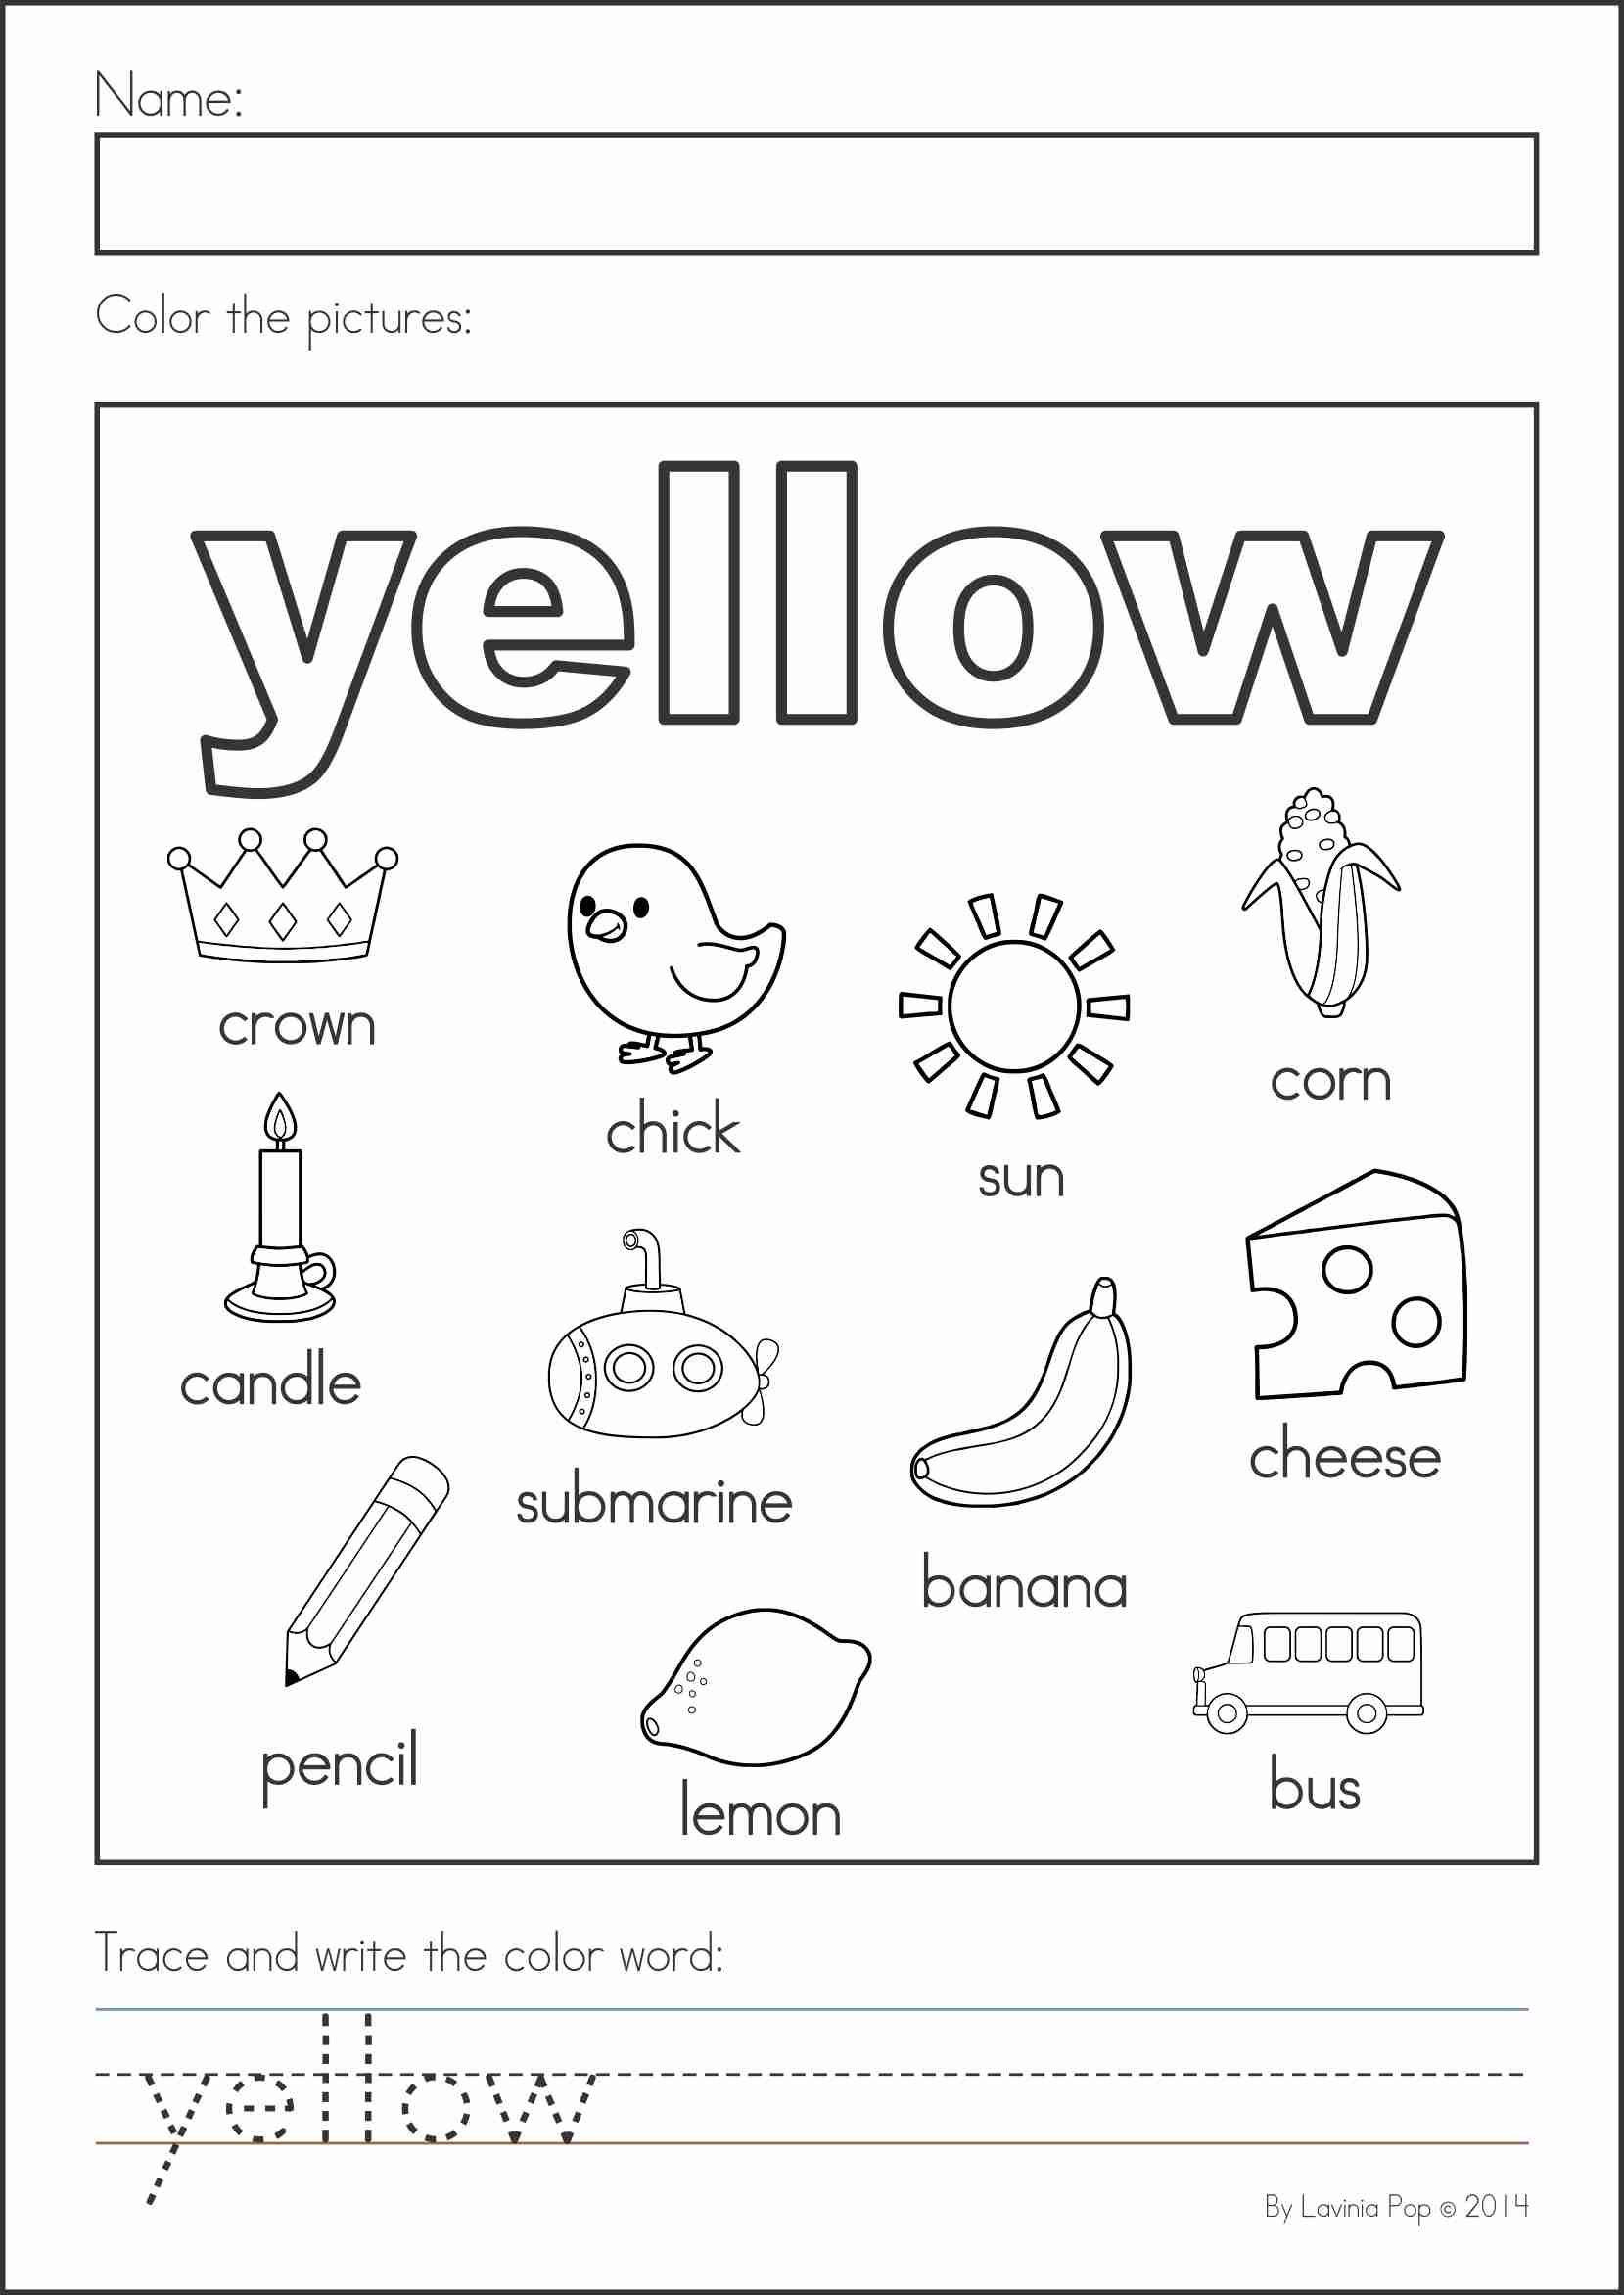 Yellow Worksheets for Preschool Best Worksheets by Herbert